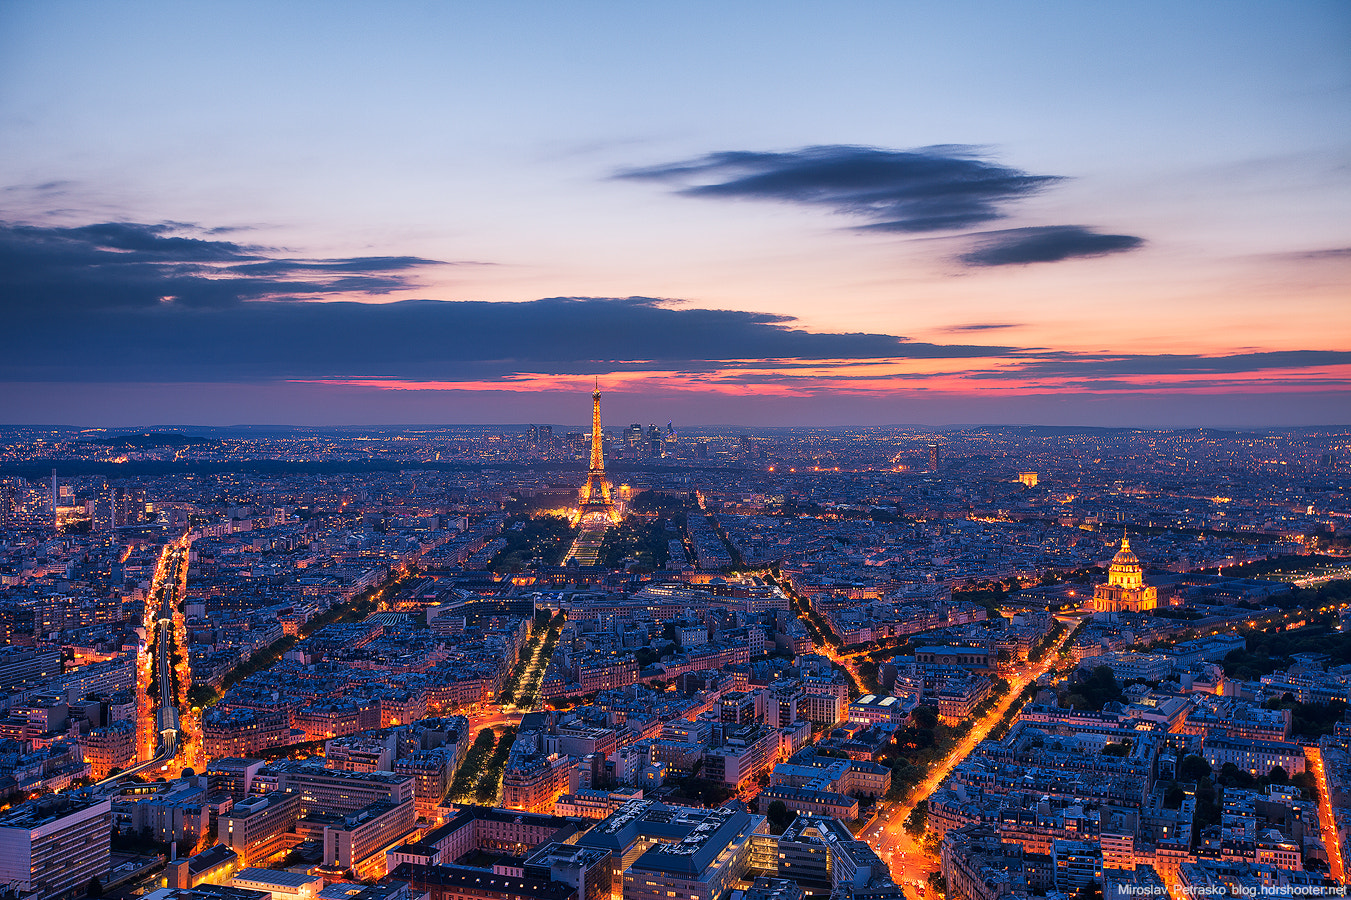 Photograph Above Paris by Miroslav Petrasko on 500px